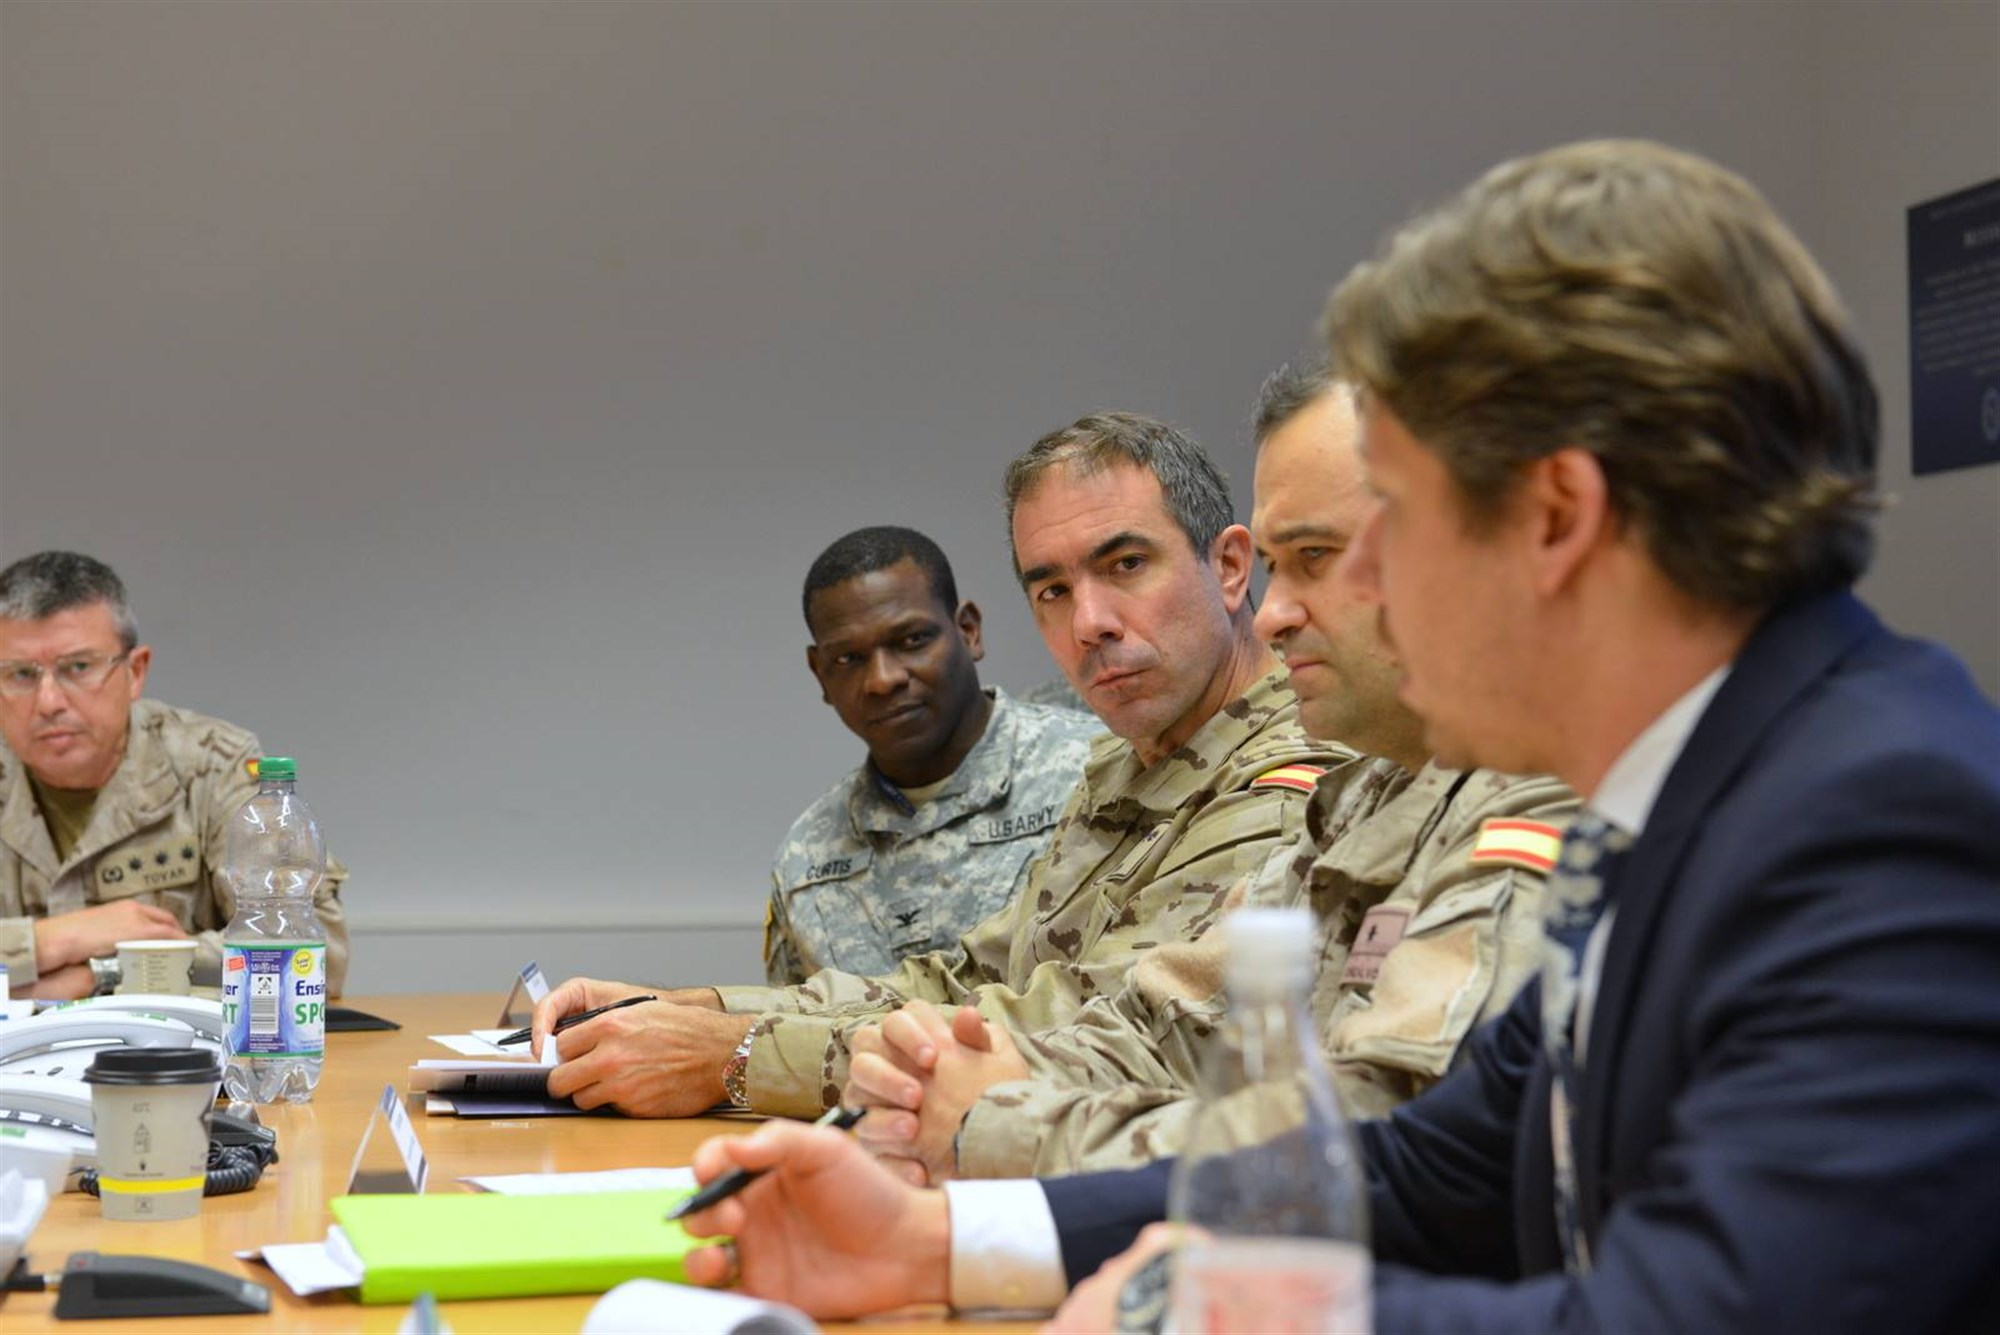 Members of the Spanish Joint Staff and U.S. Africa Command participate in a discussion at the AFRICOM Multinational Cooperation Center in Stuttgart, Germany, Dec. 2, 2015.